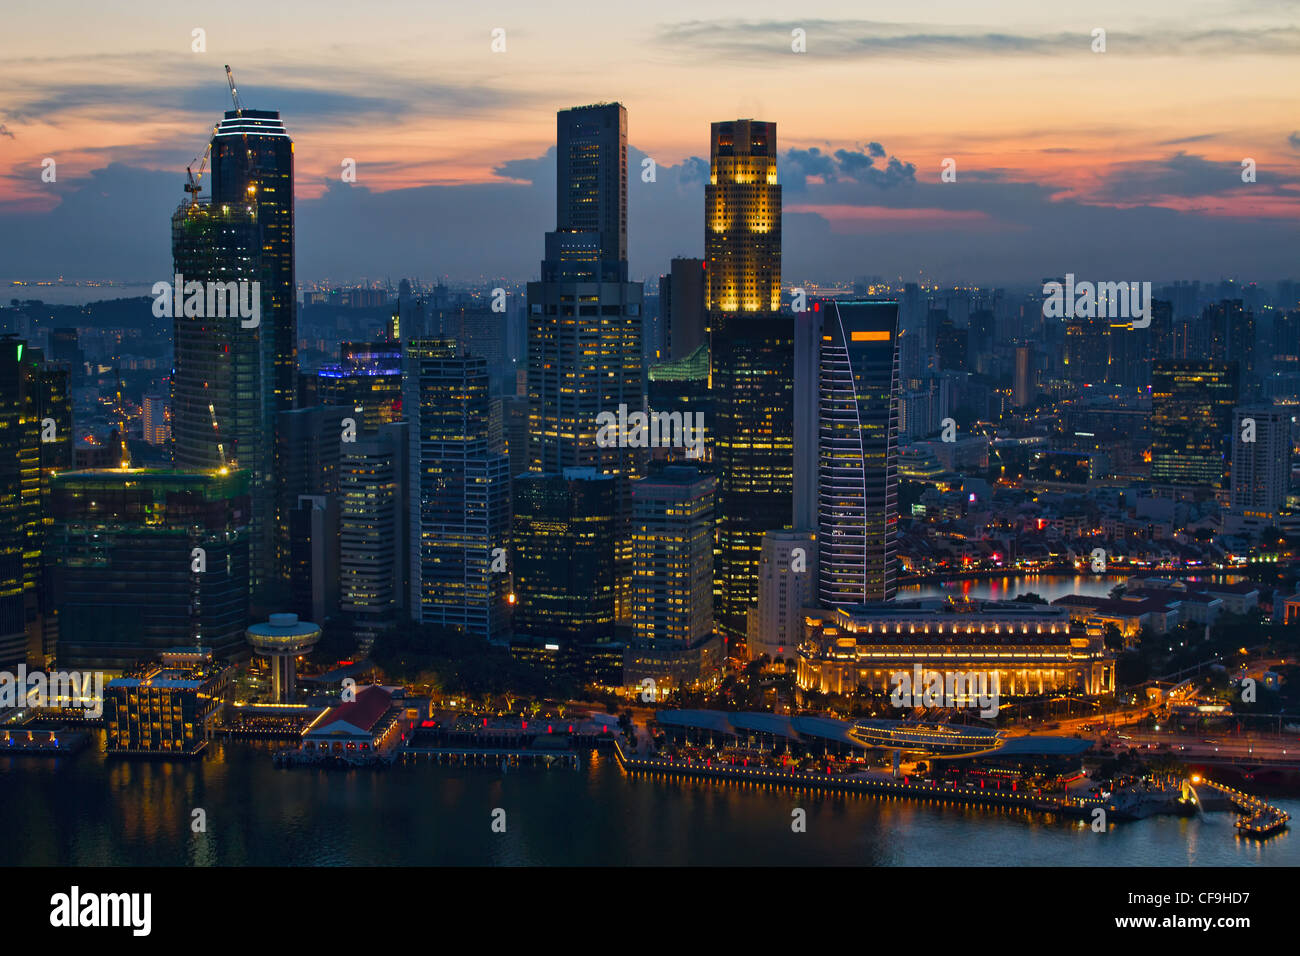 Sunset Over Singapore City Skyline Aerial View - Stock Image